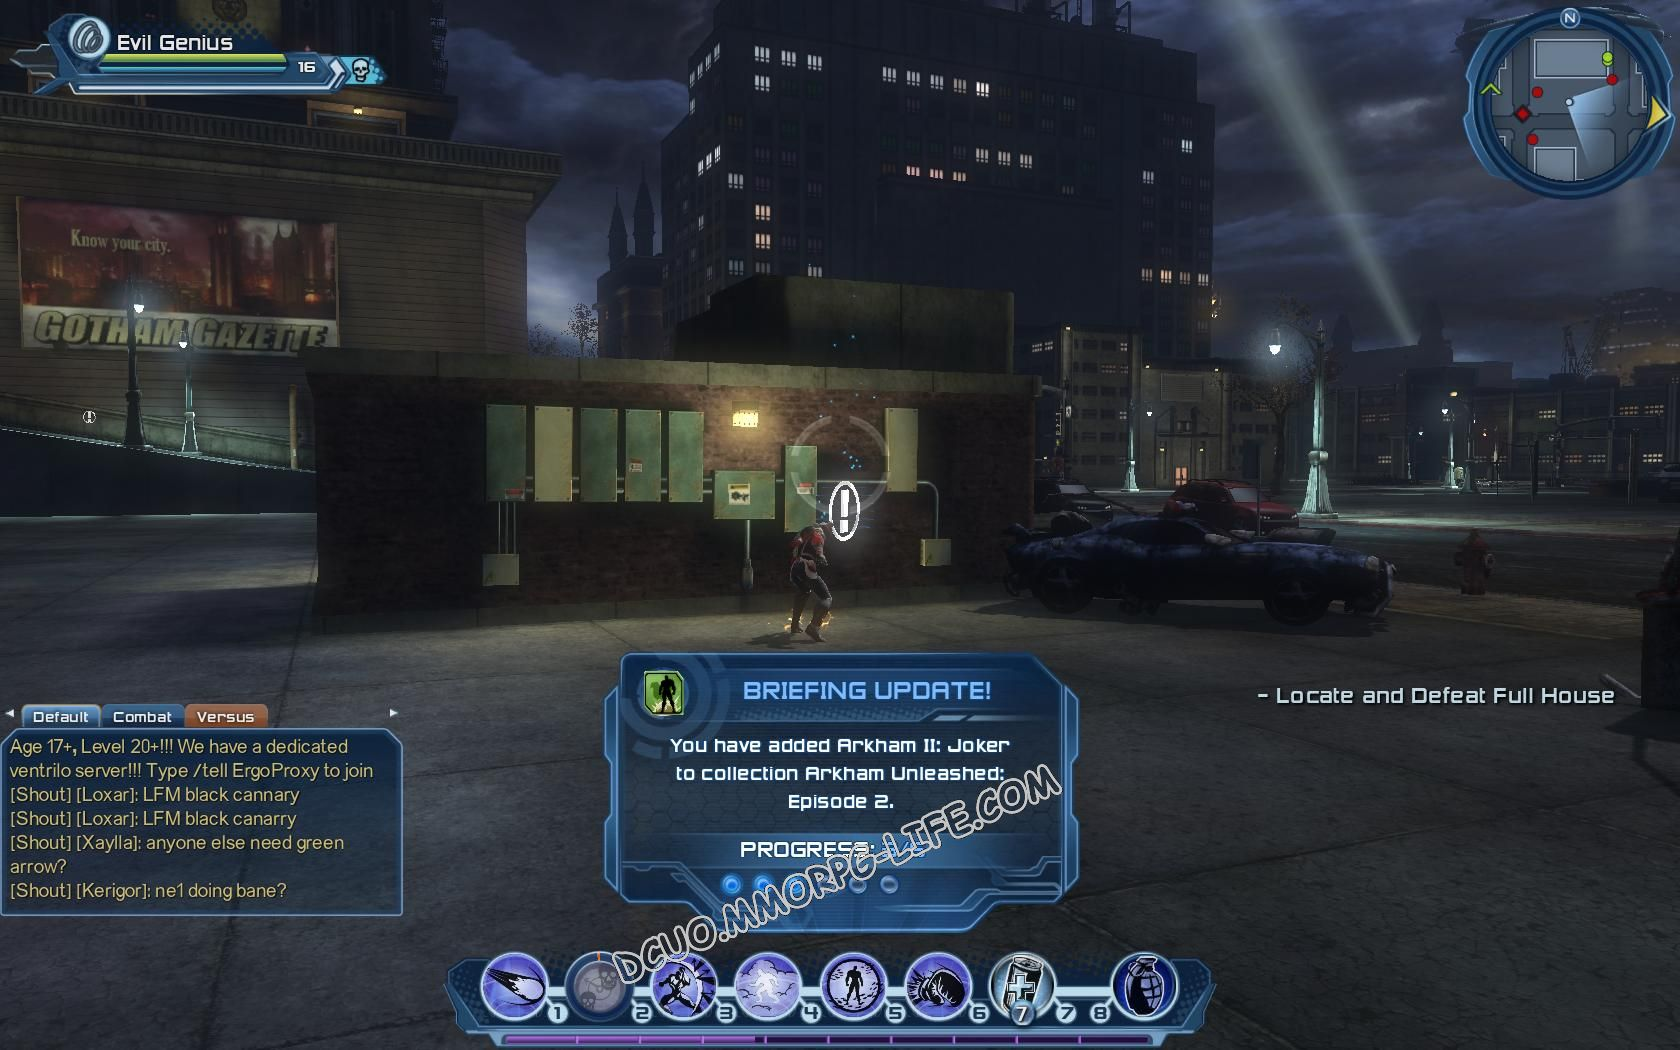 Briefing: Arkham Unleashed: Episode 2, step 6 Arkham II: Joker  image 732 middle size